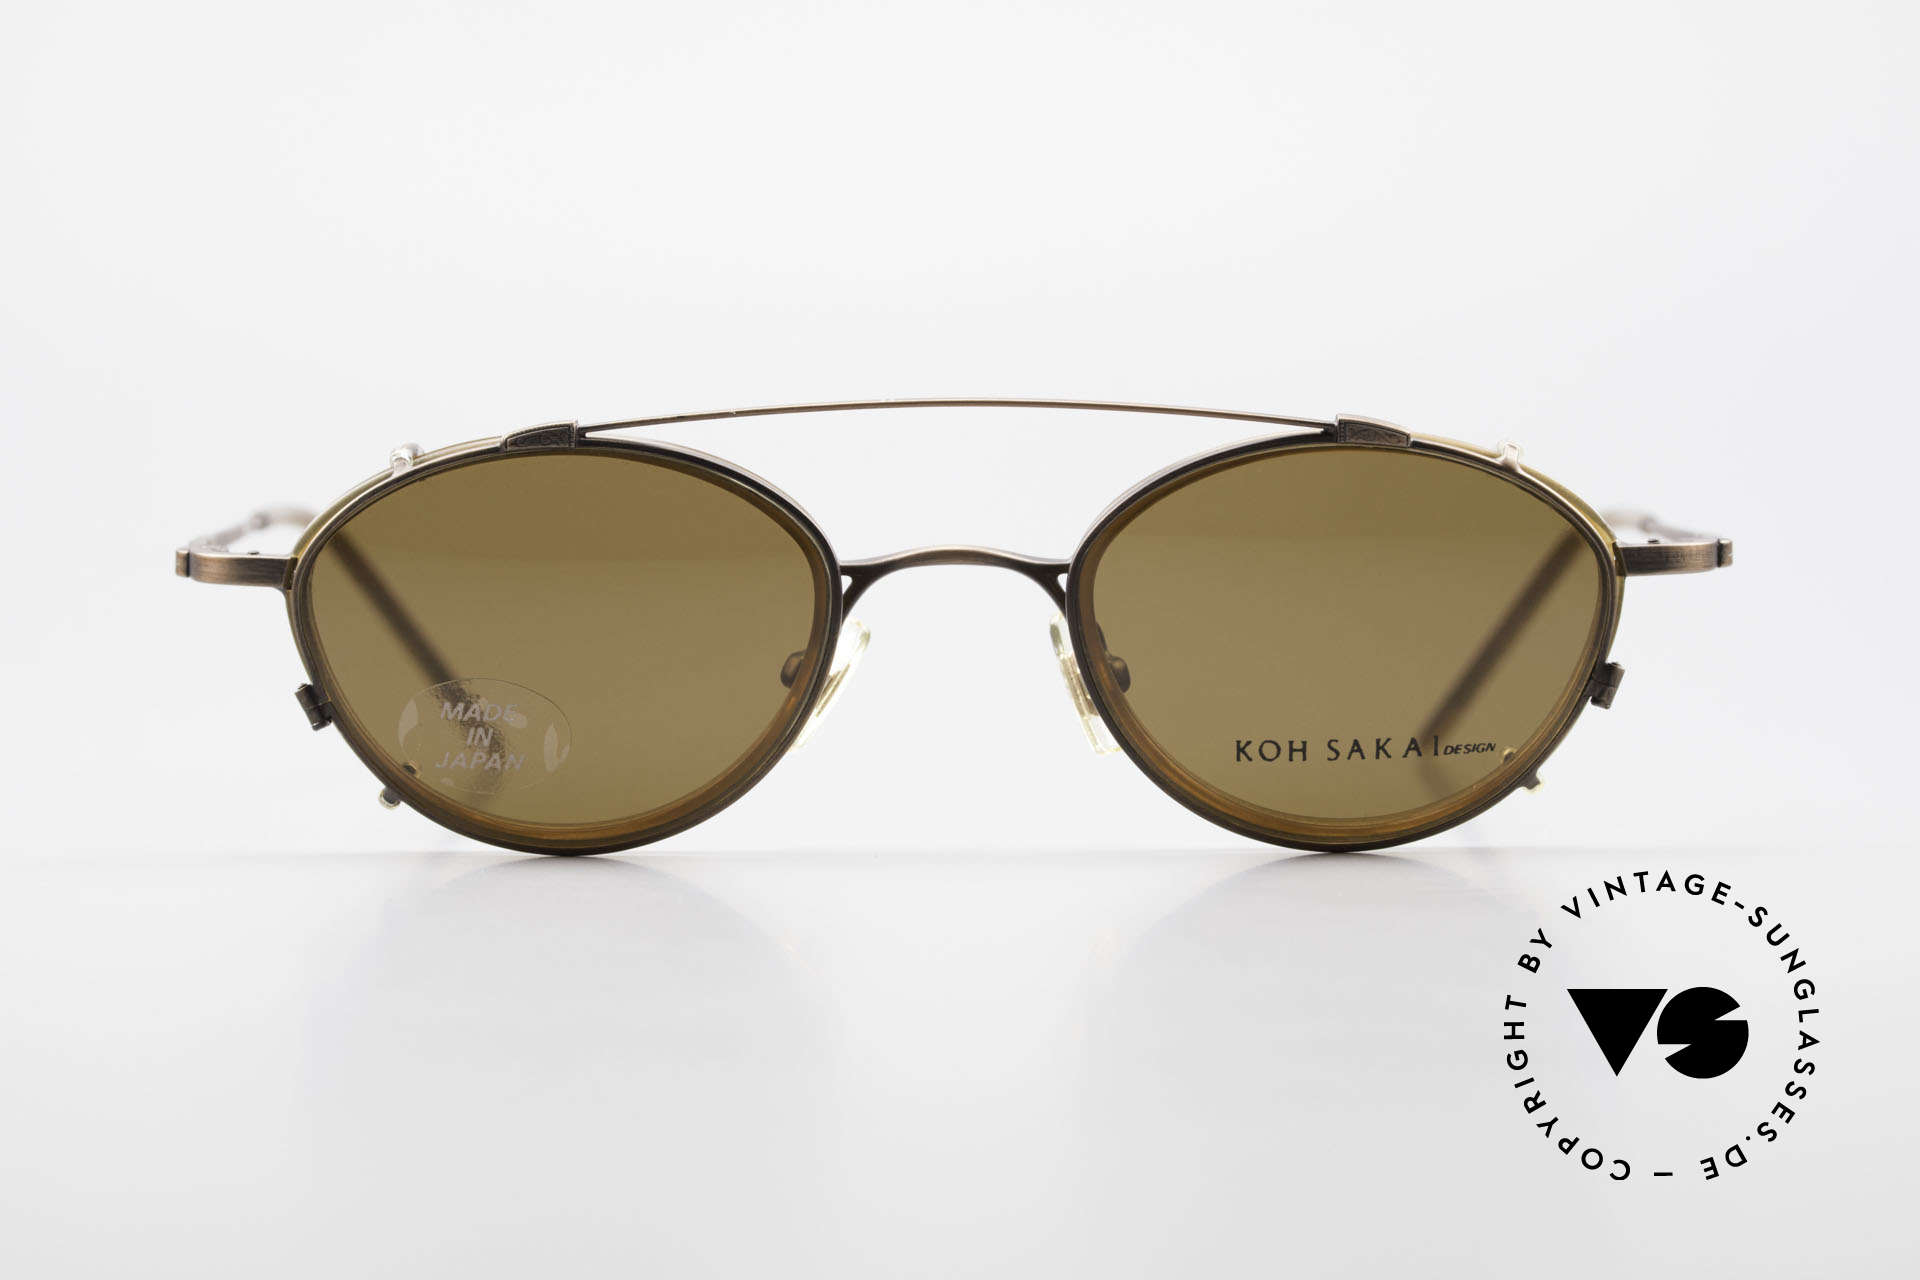 Koh Sakai KS9832 Vintage Glasses With Clip On, Koh Sakai, BADA and OKIO have been one distribution, Made for Men and Women